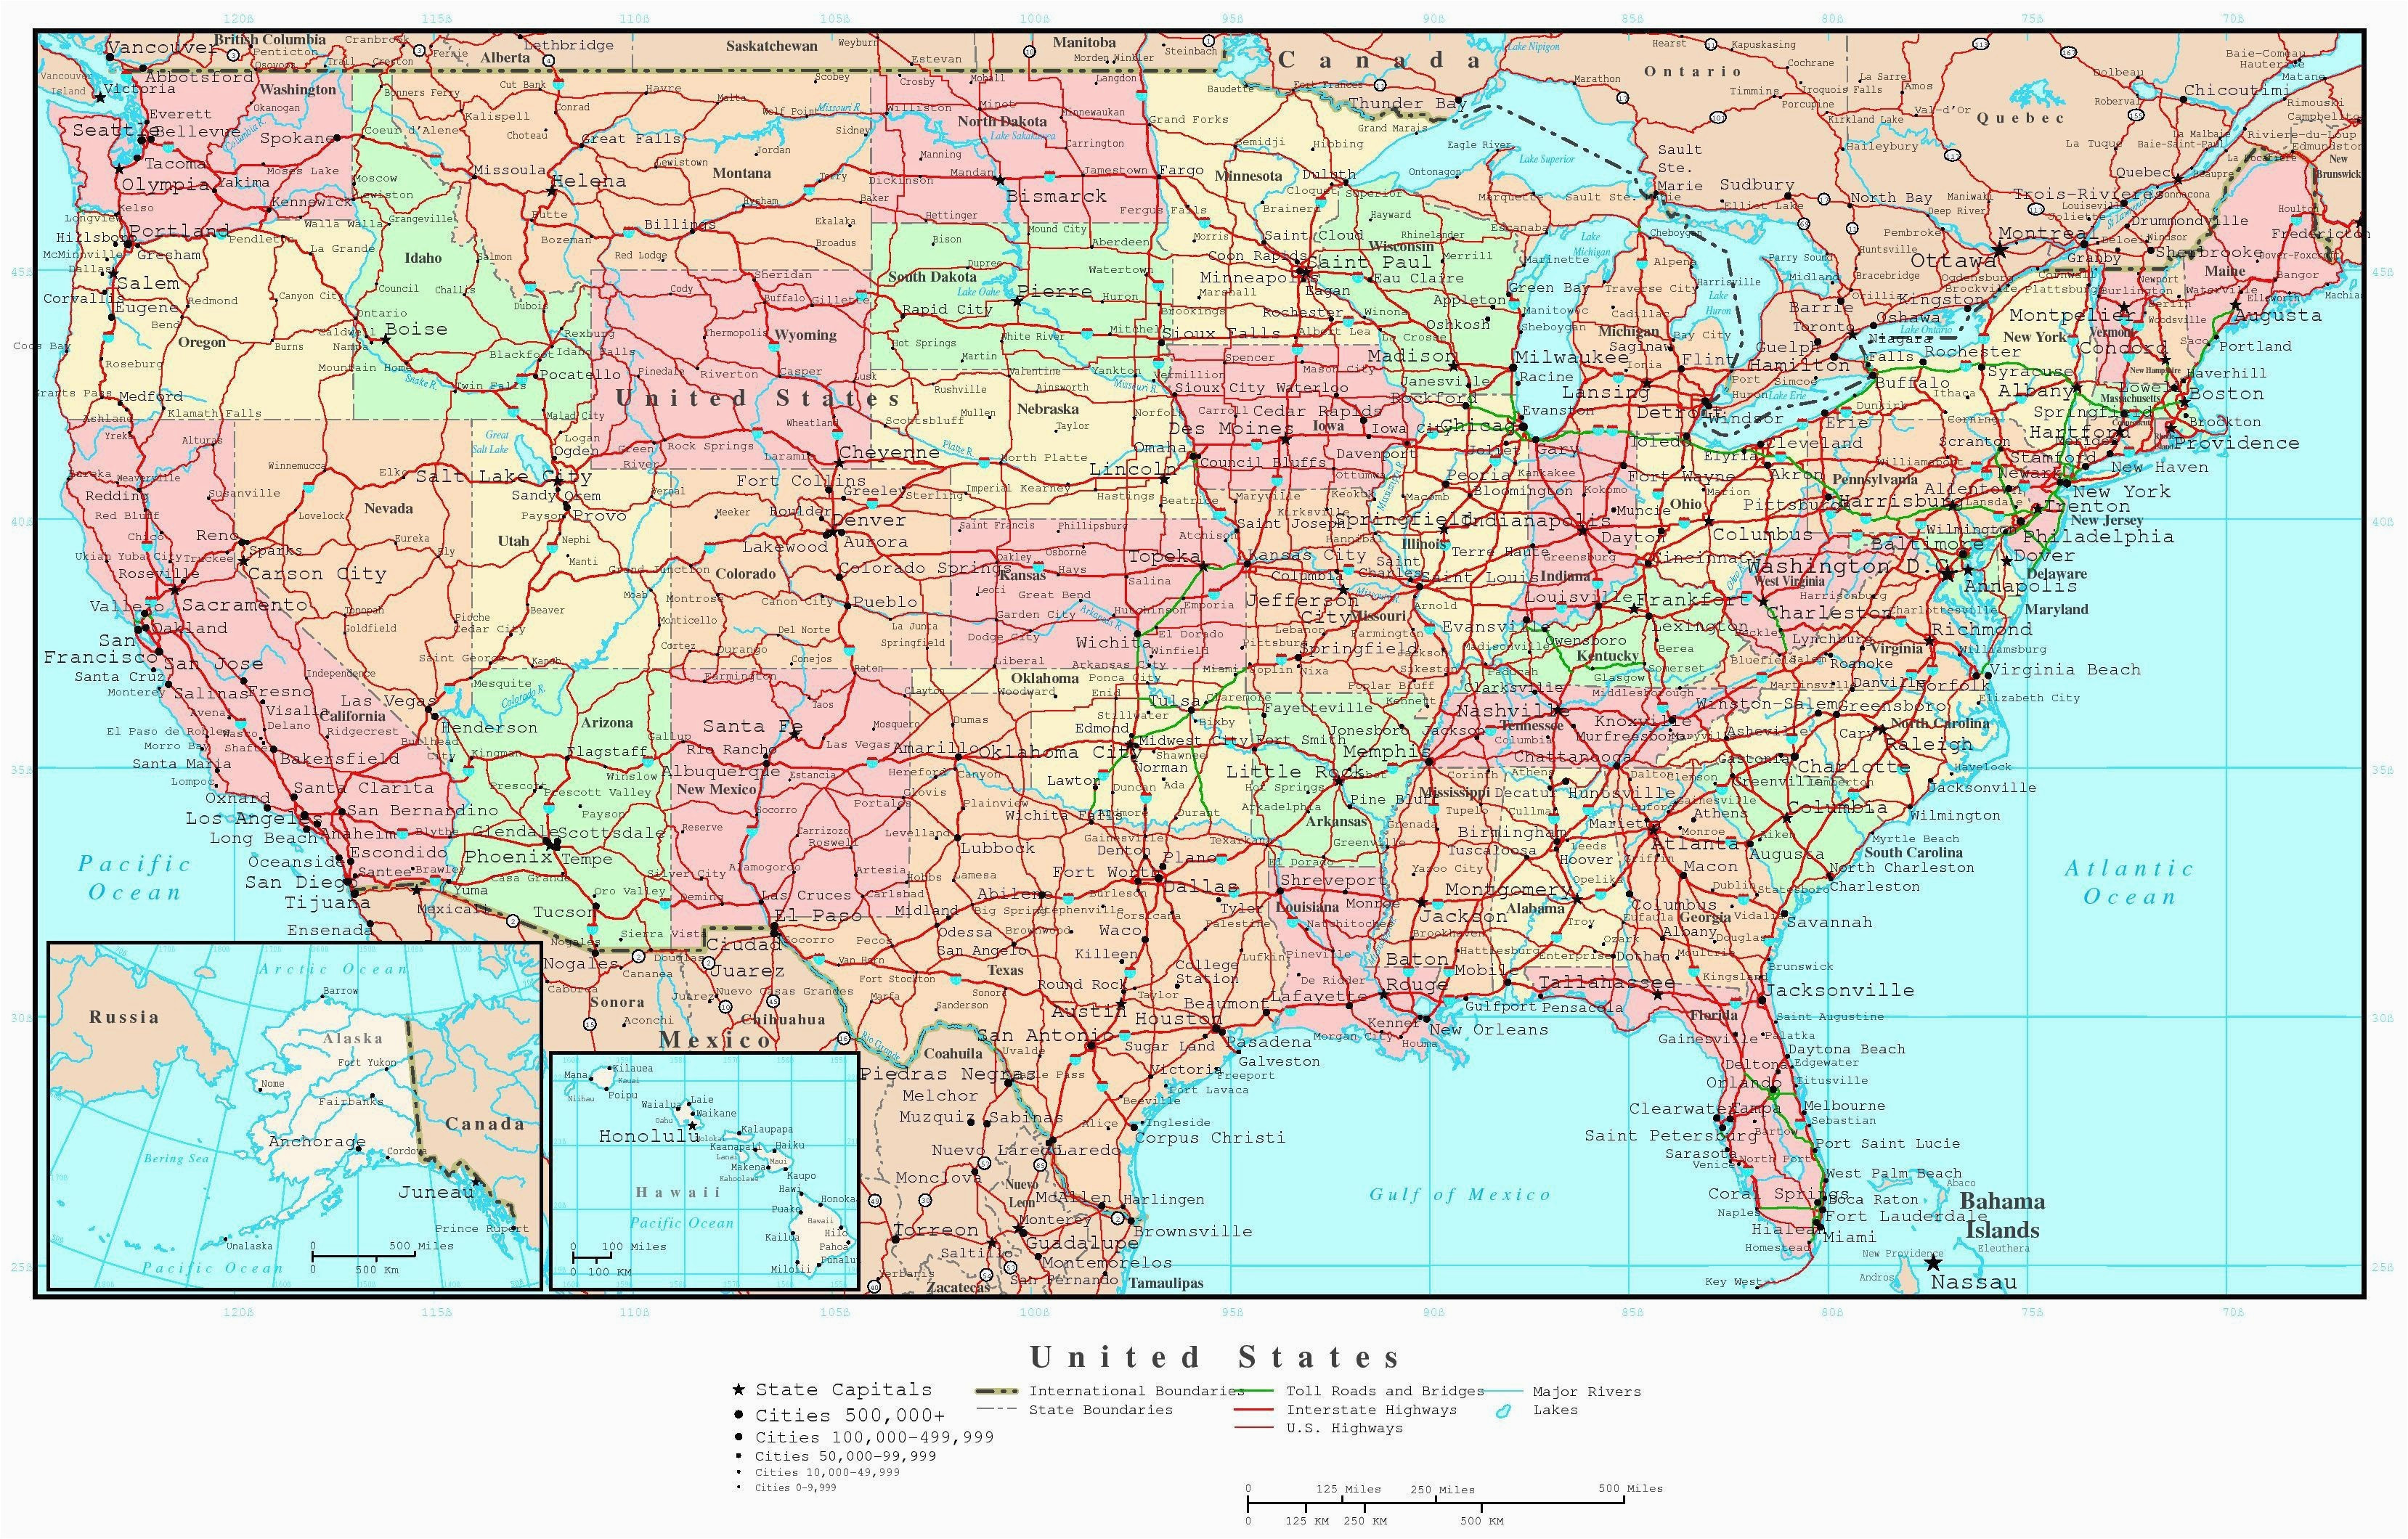 Map Of Georgia United States.Physical Map Of Georgia United States Map State Boundaries Fresh